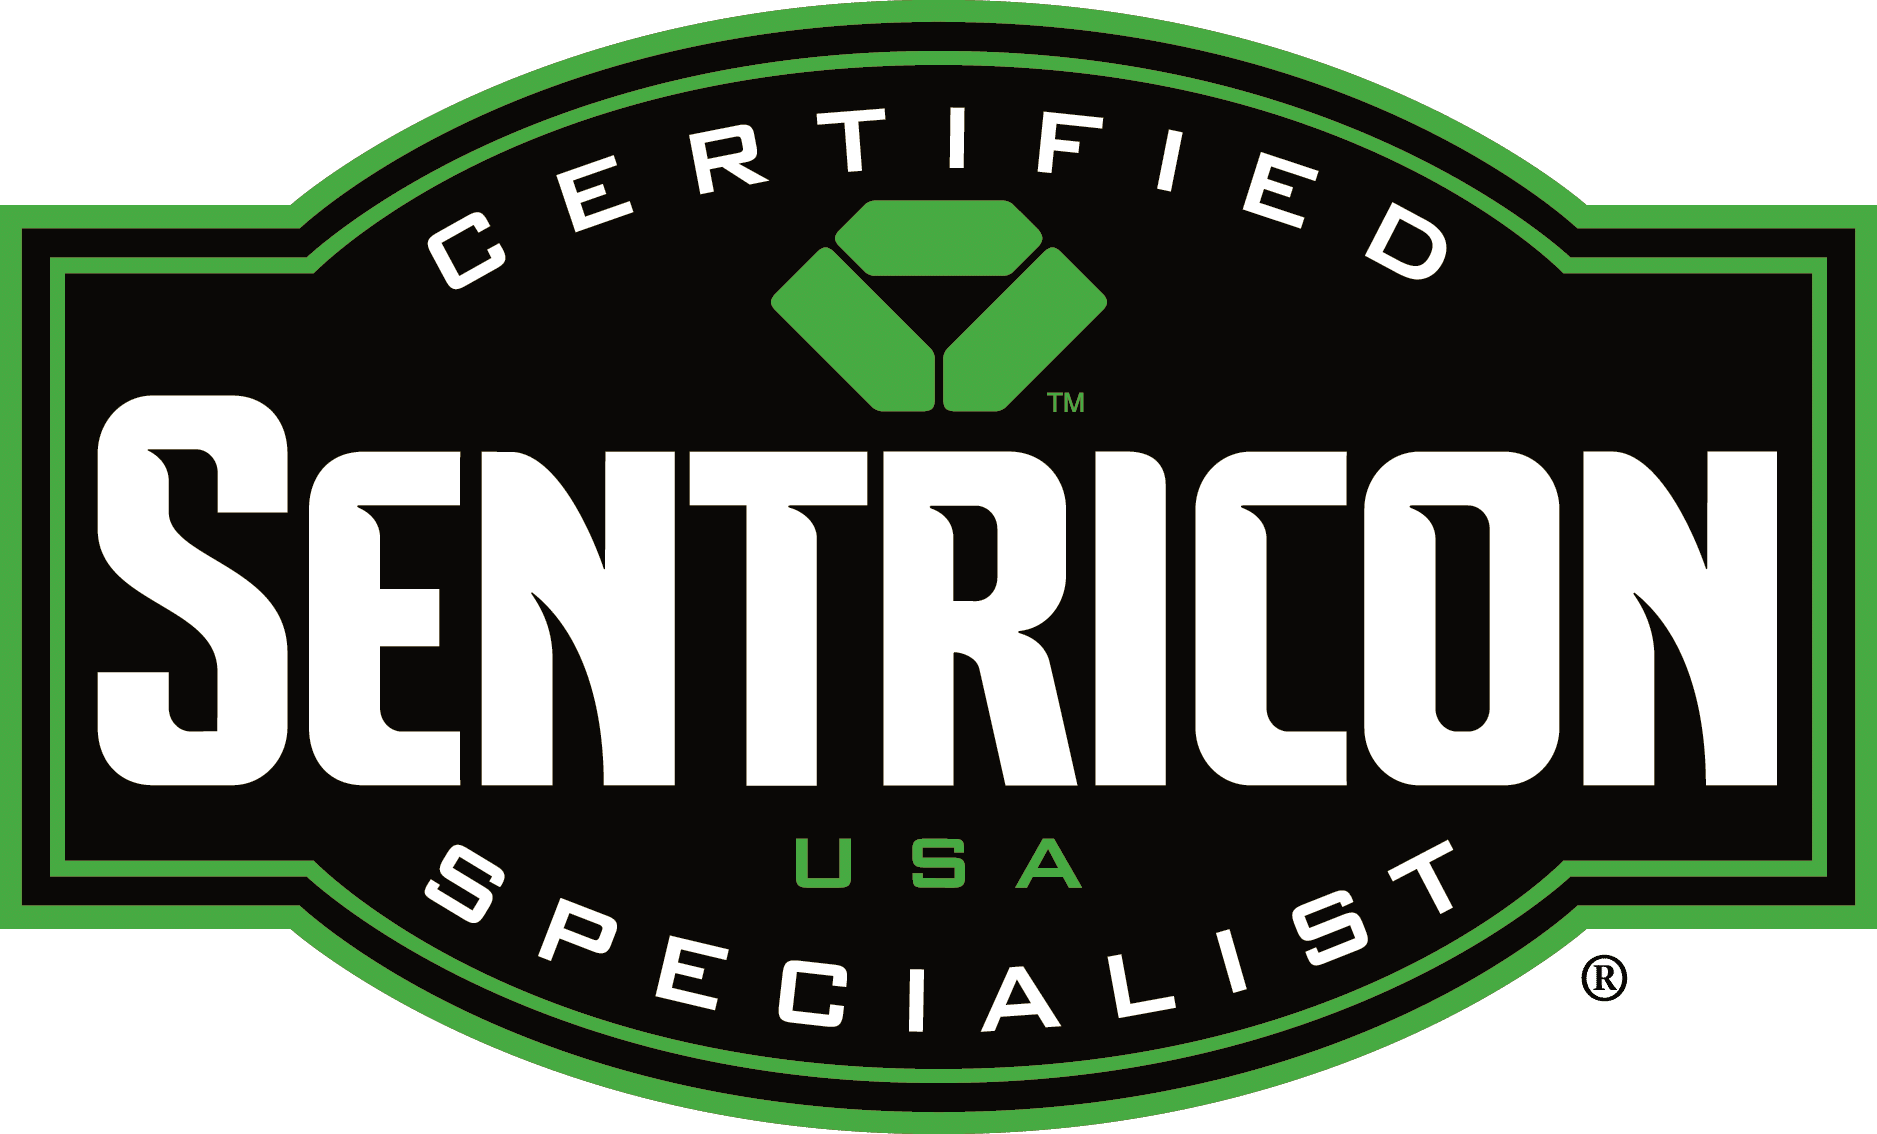 Nvirotect Termite Services are Sentricon Certified Specialists